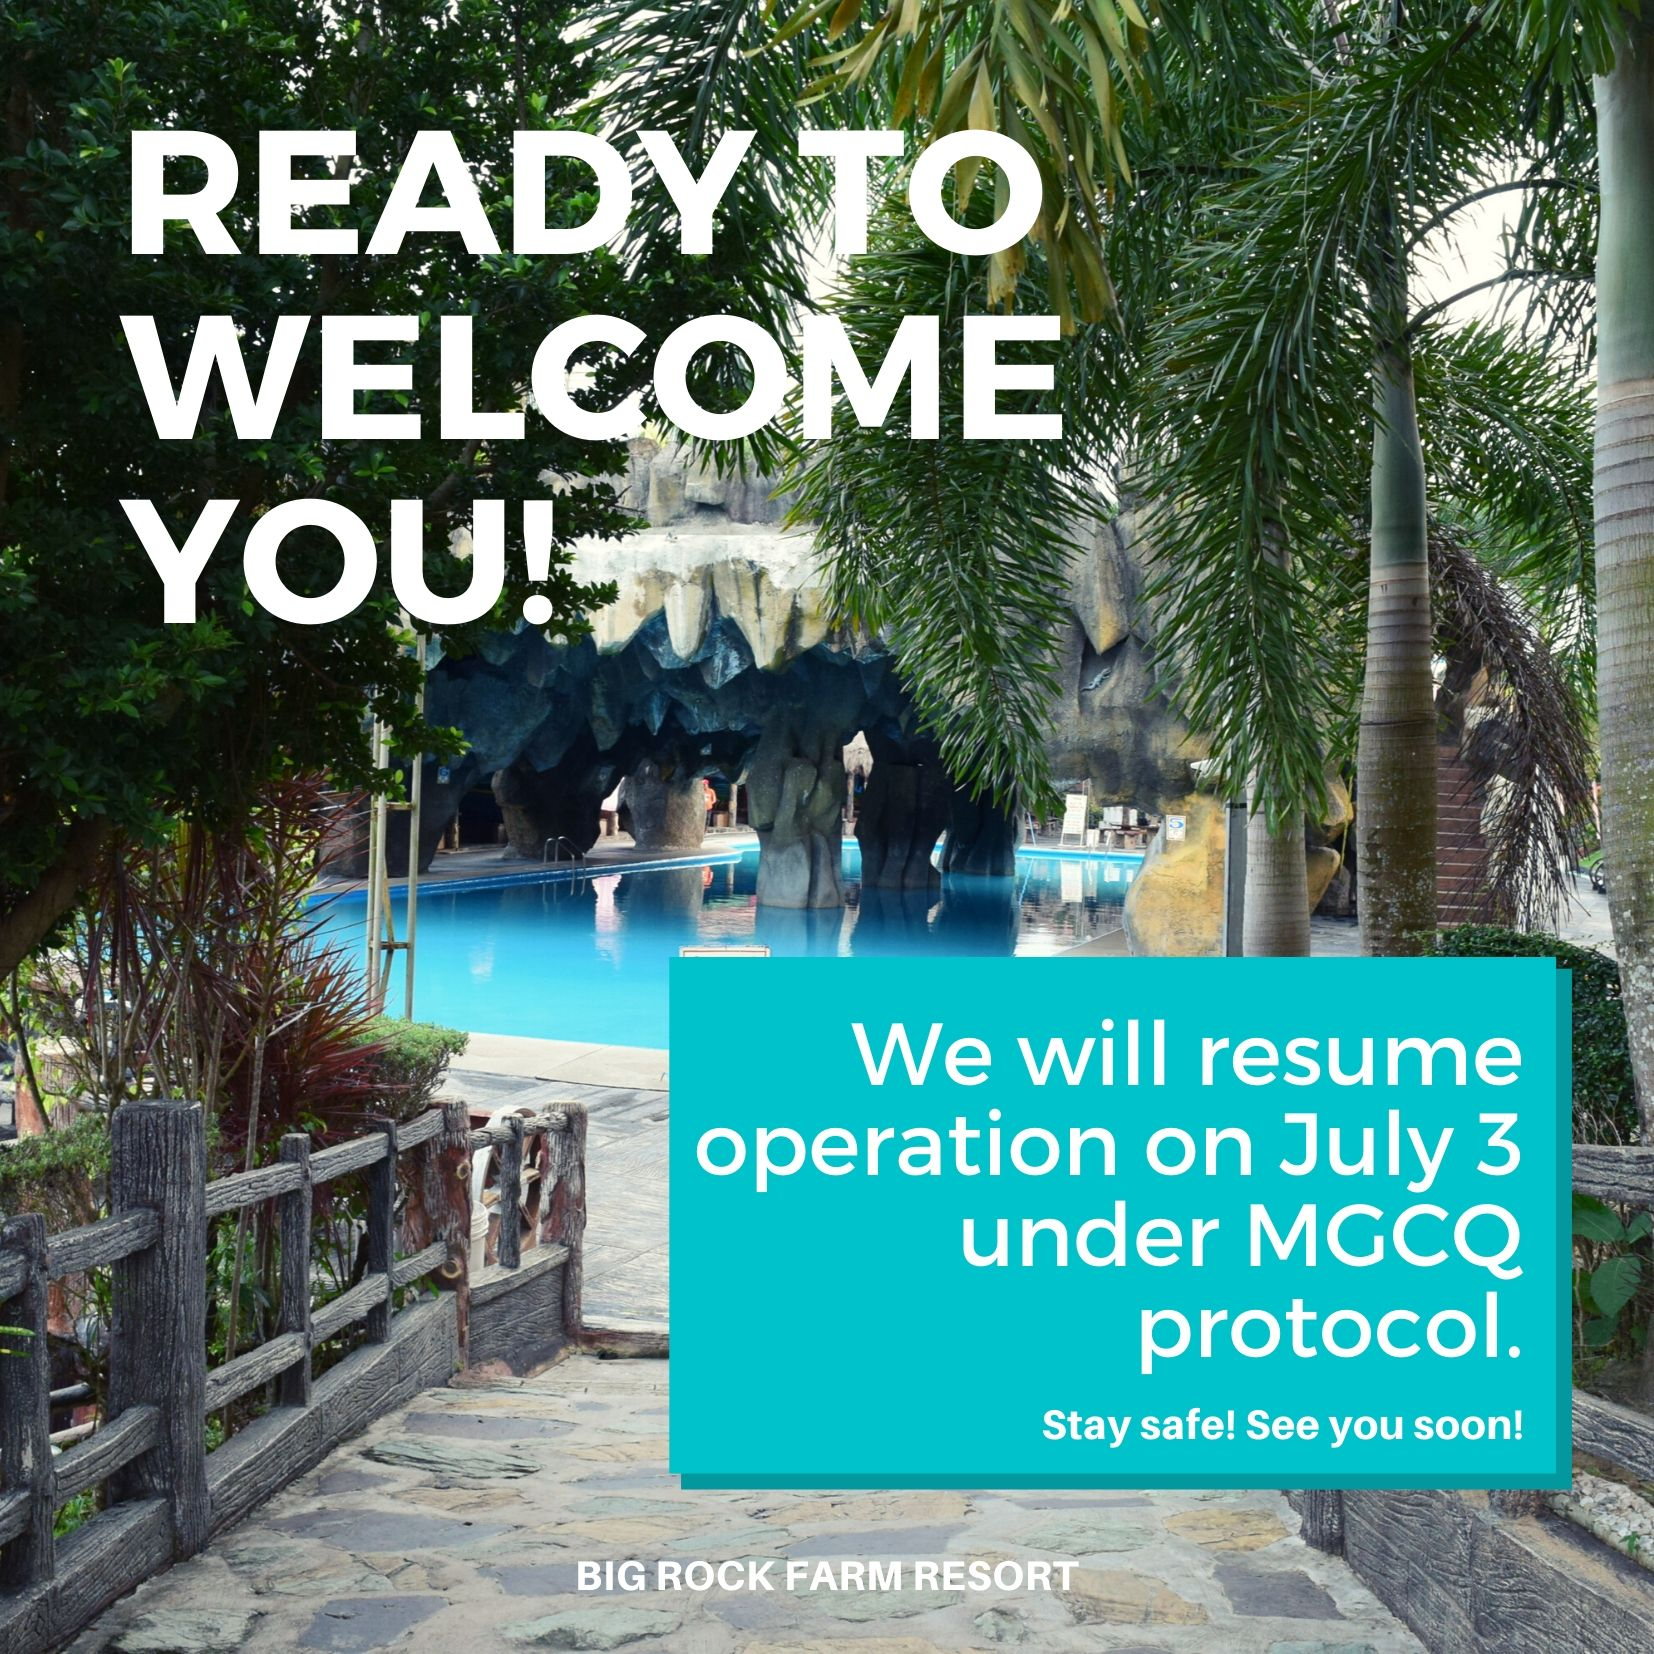 Resume operation on July 3, 2020 under MGCQ protocol